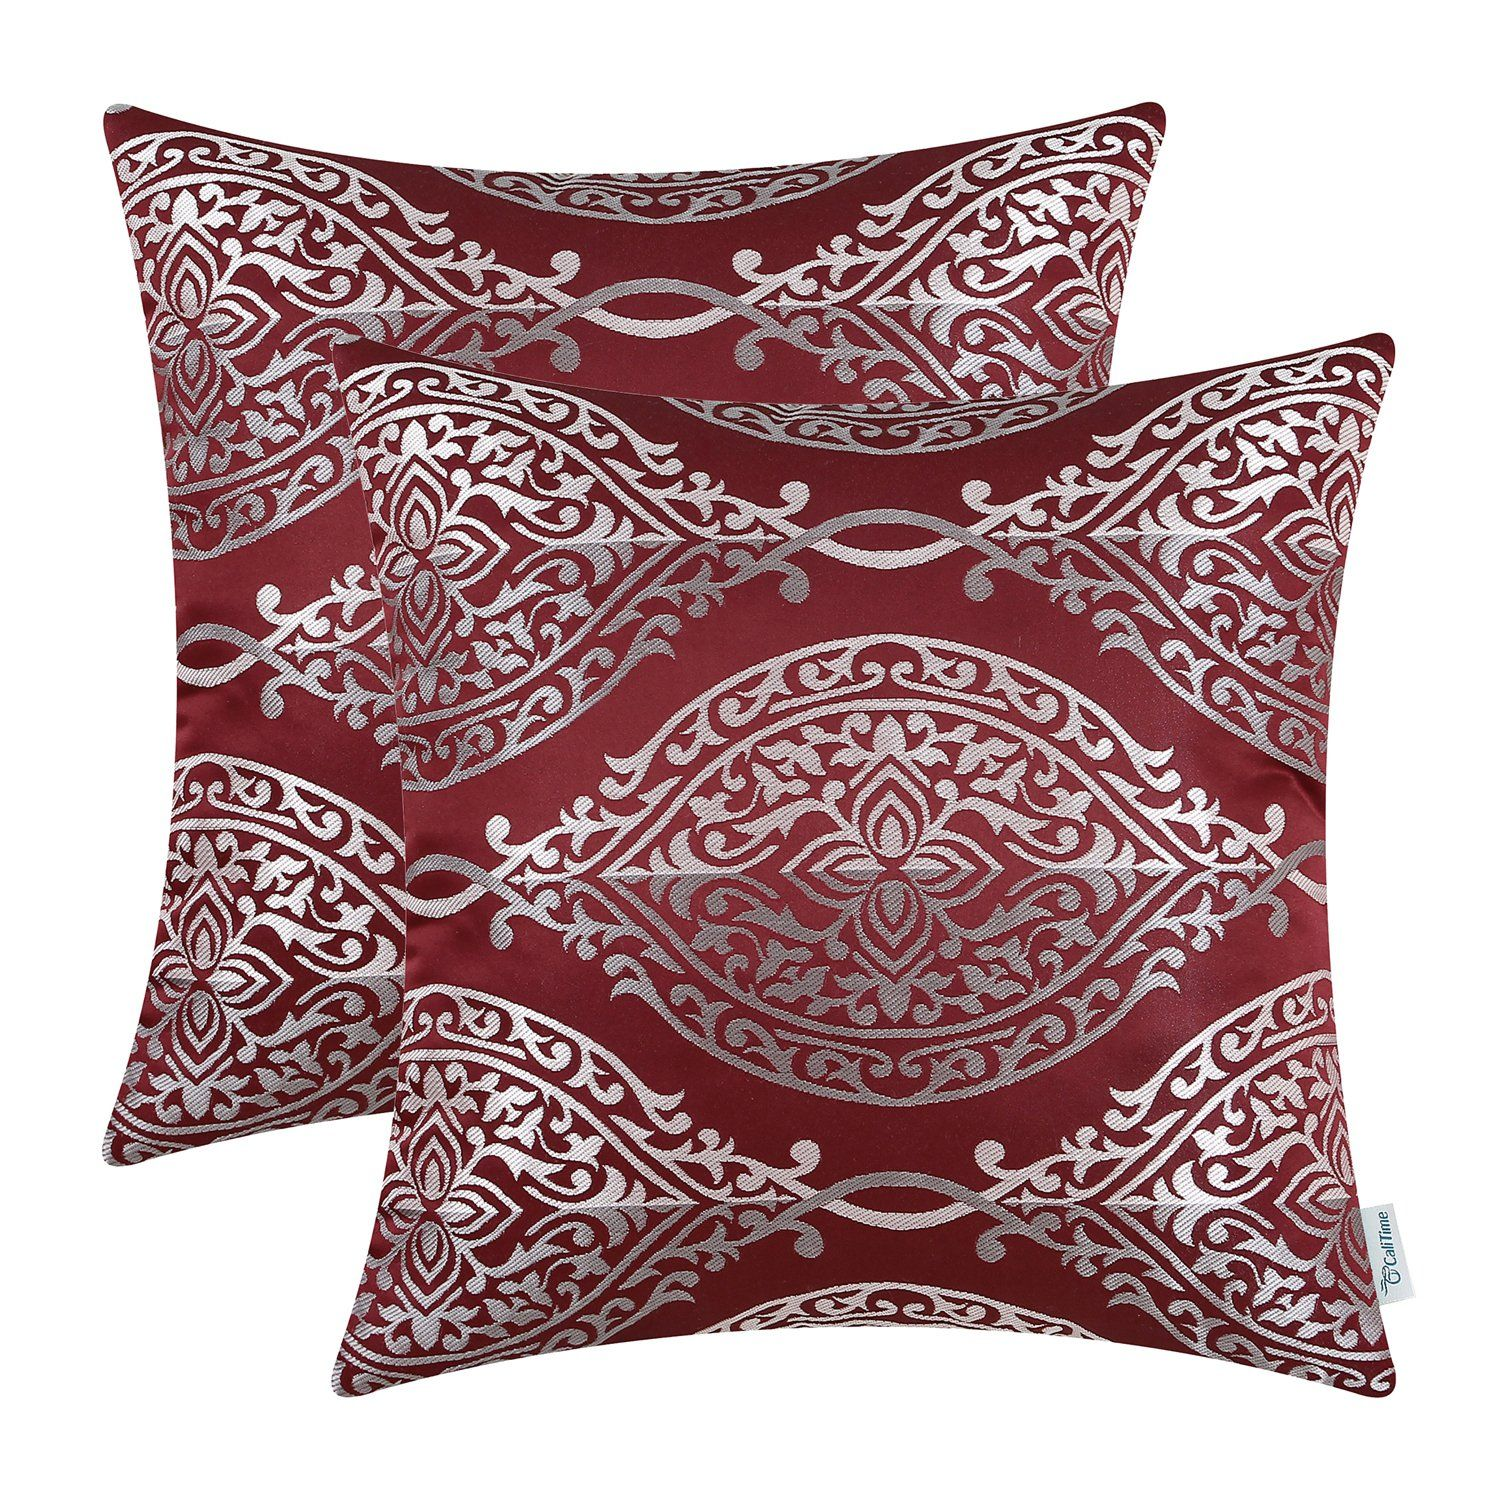 feather luxurious throw gold back fill cushions british of jacquard pattern burgundy velvet de wonderful sword pillows cover classic full pillow lys size tapestry fleur cushion